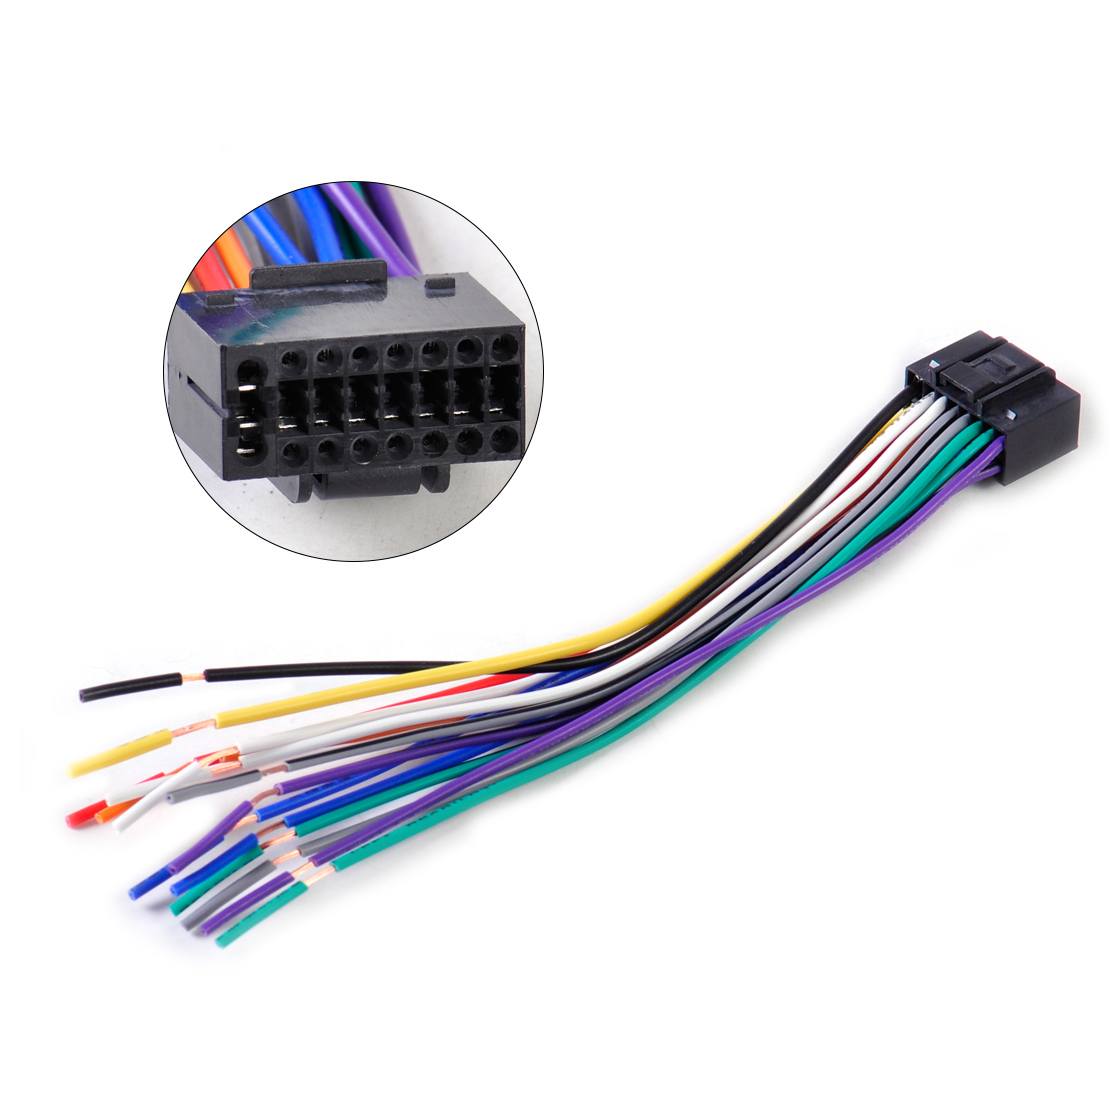 Audio Cable Wiring : Dwcx car radio stereo wire wiring harness cd player plug